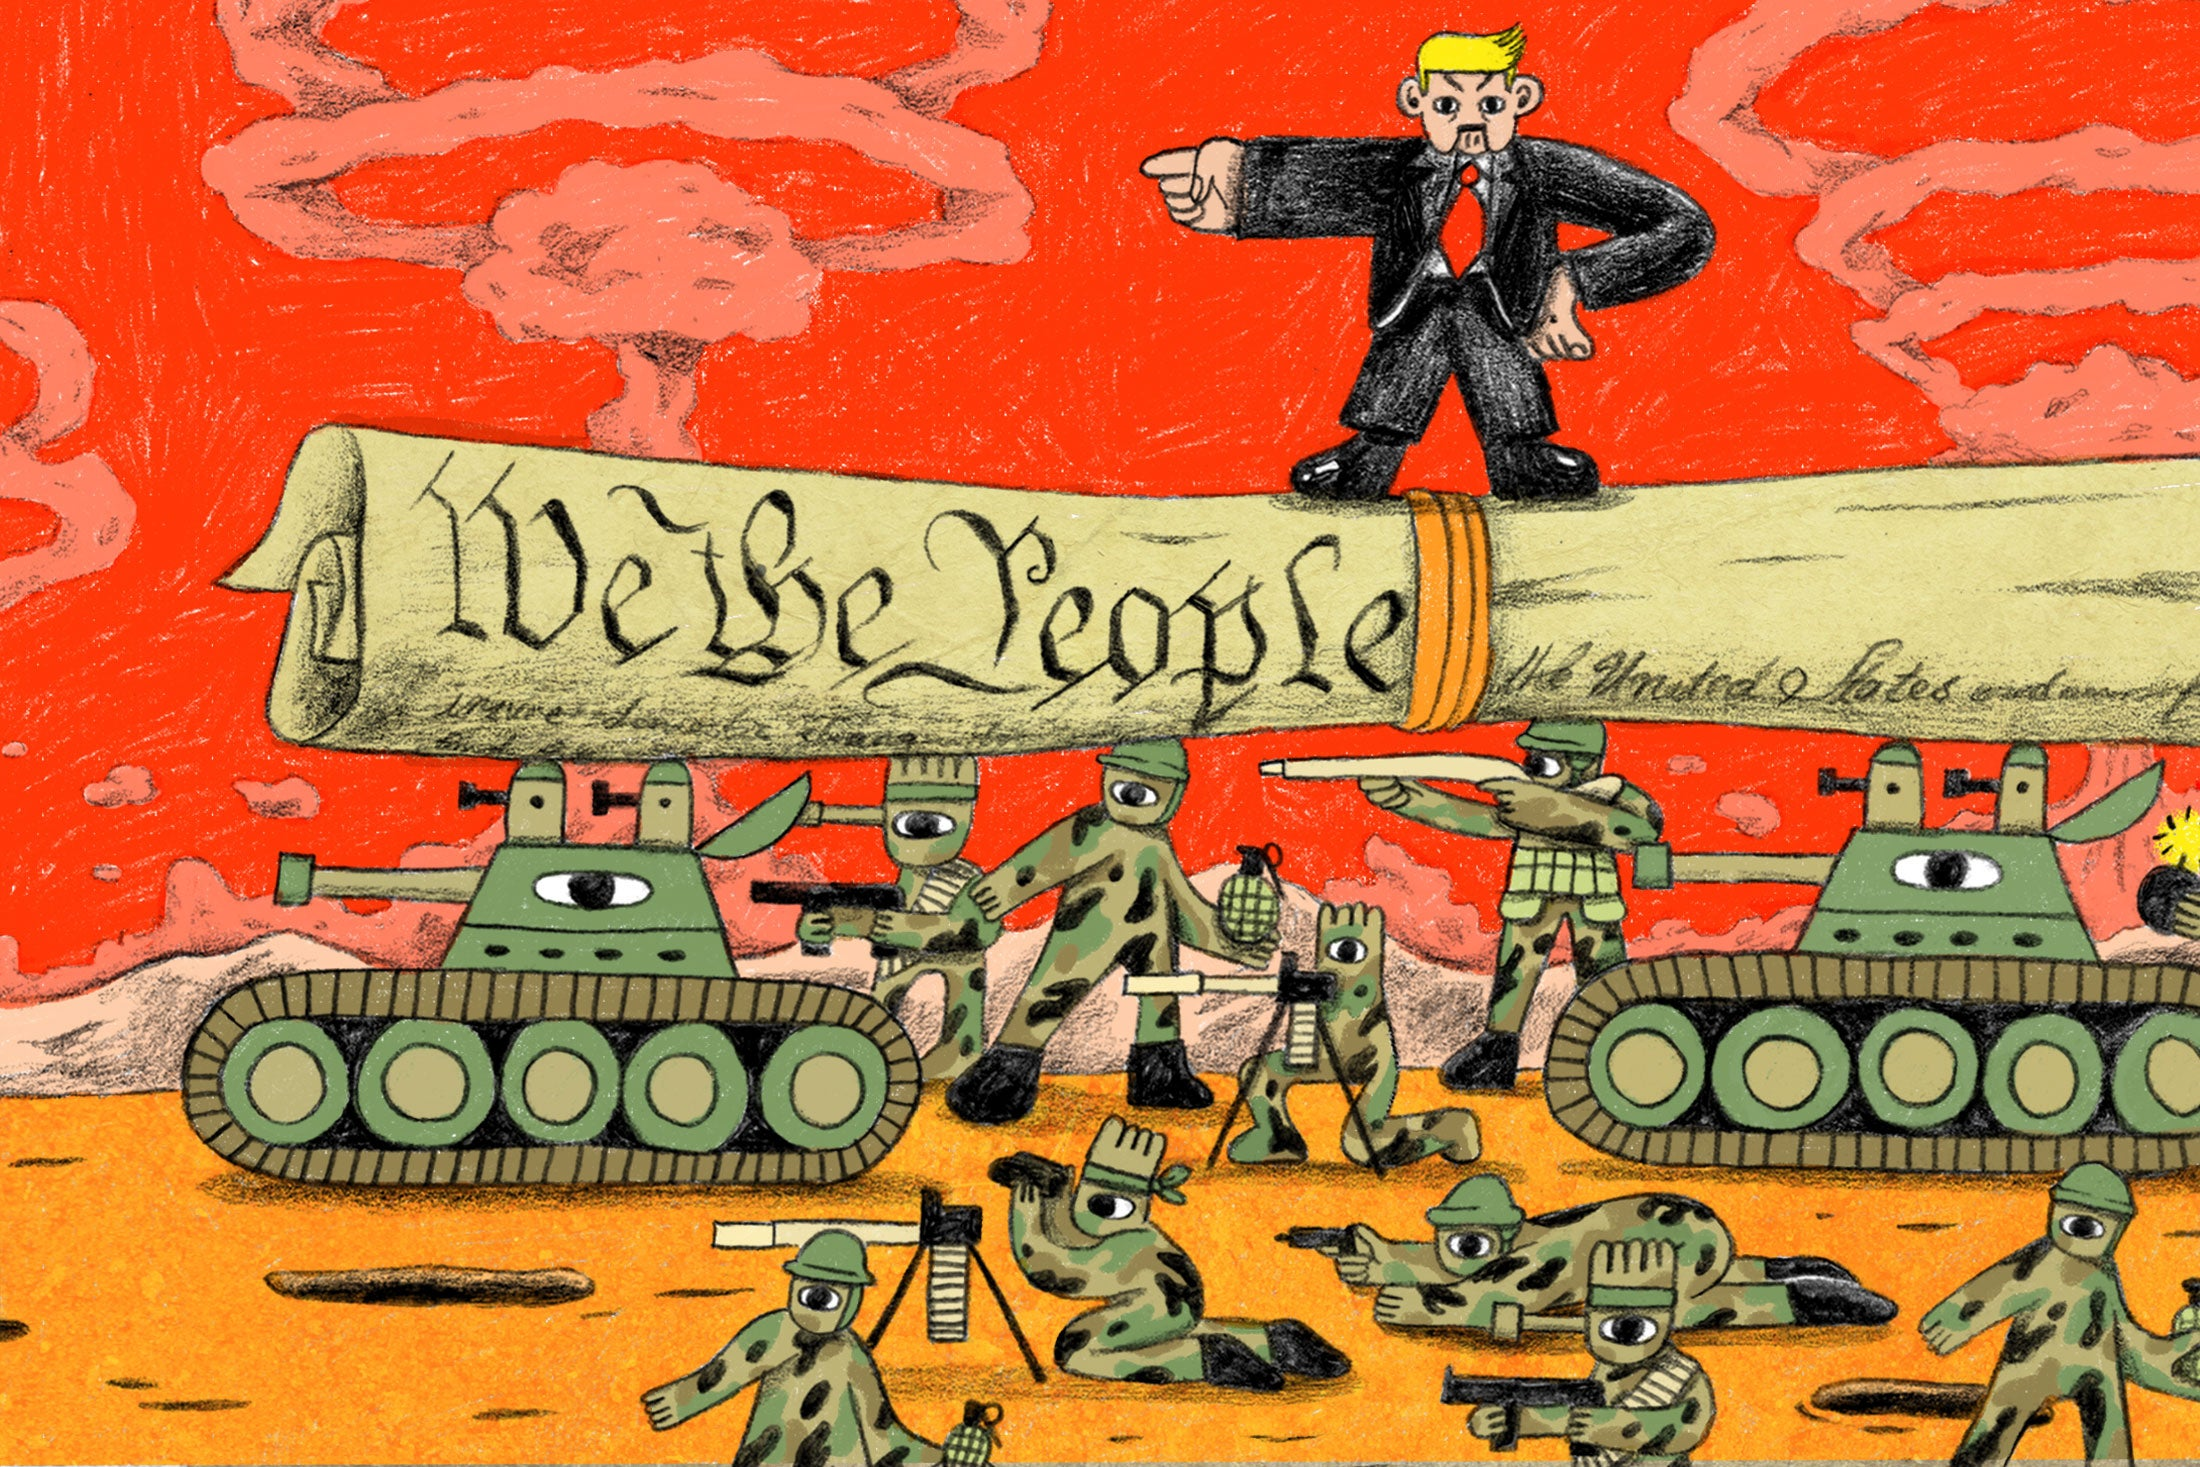 Illustration: A Donald Trump-like figure stands on a large copy of the Constitution laid across two tanks as other soldiers prepare.